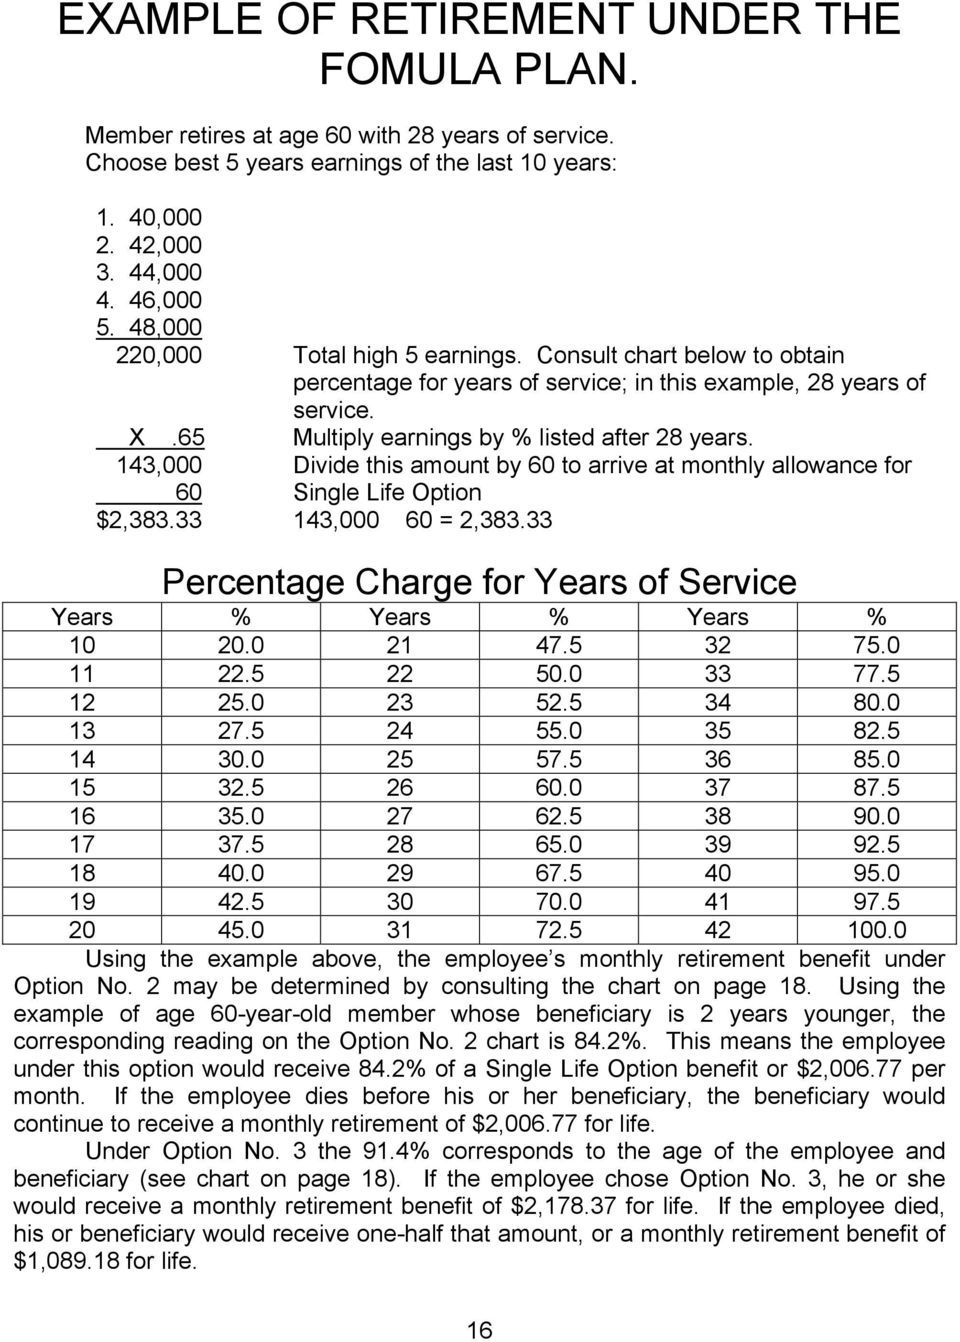 143,000 60 Divide this amount by 60 to arrive at monthly allowance for Single Life Option $2,383.33 143,000 60 = 2,383.33 Percentage Charge for Years of Service Years % Years % Years % 10 20.0 21 47.